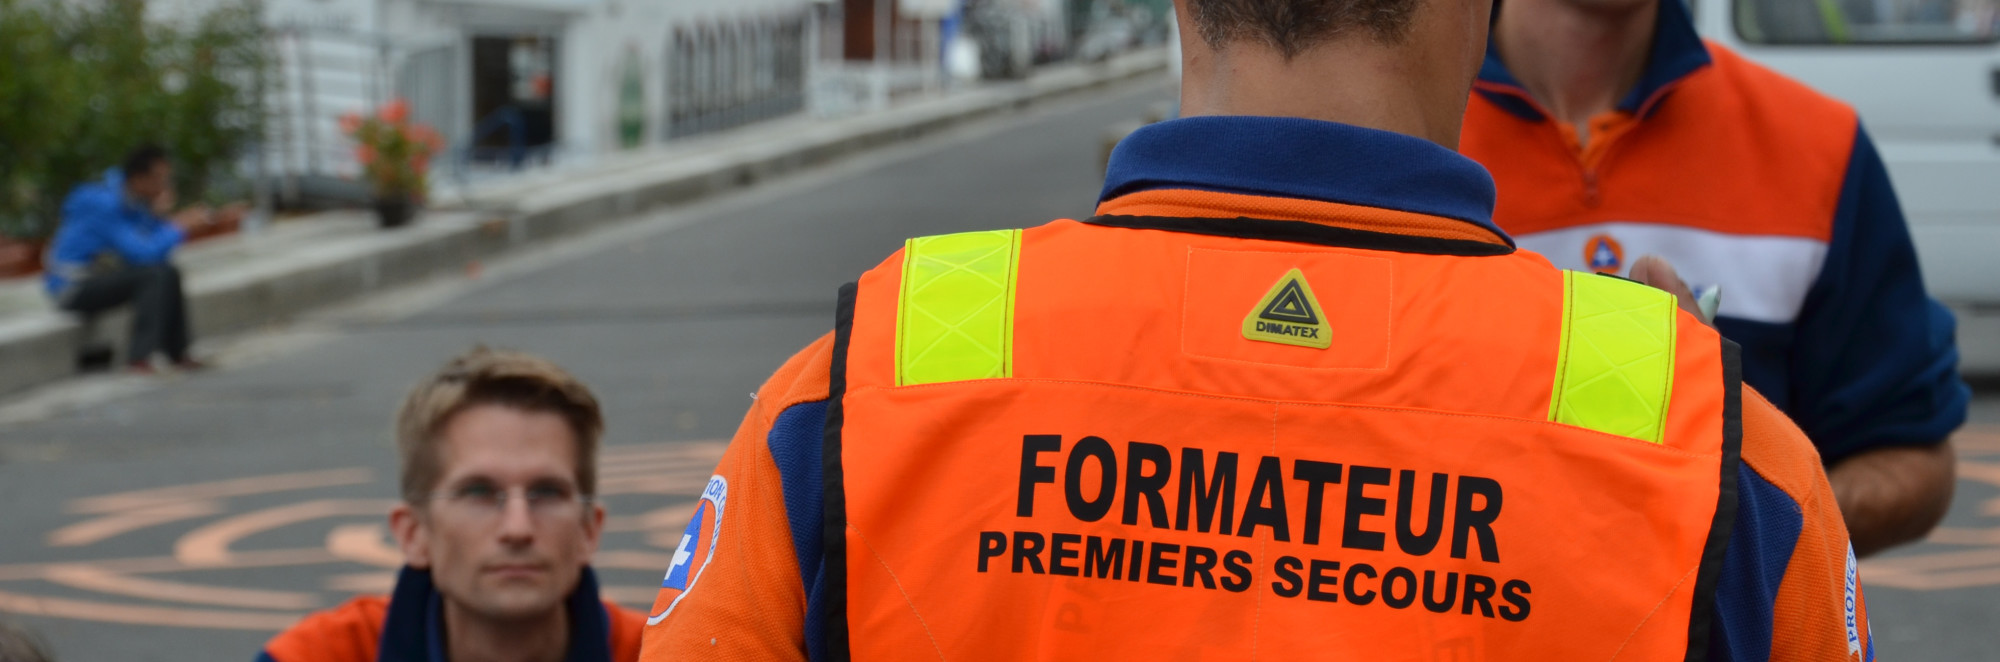 Formation-interne-protection-civile-de-paris-homepage-dos-e1425677320261